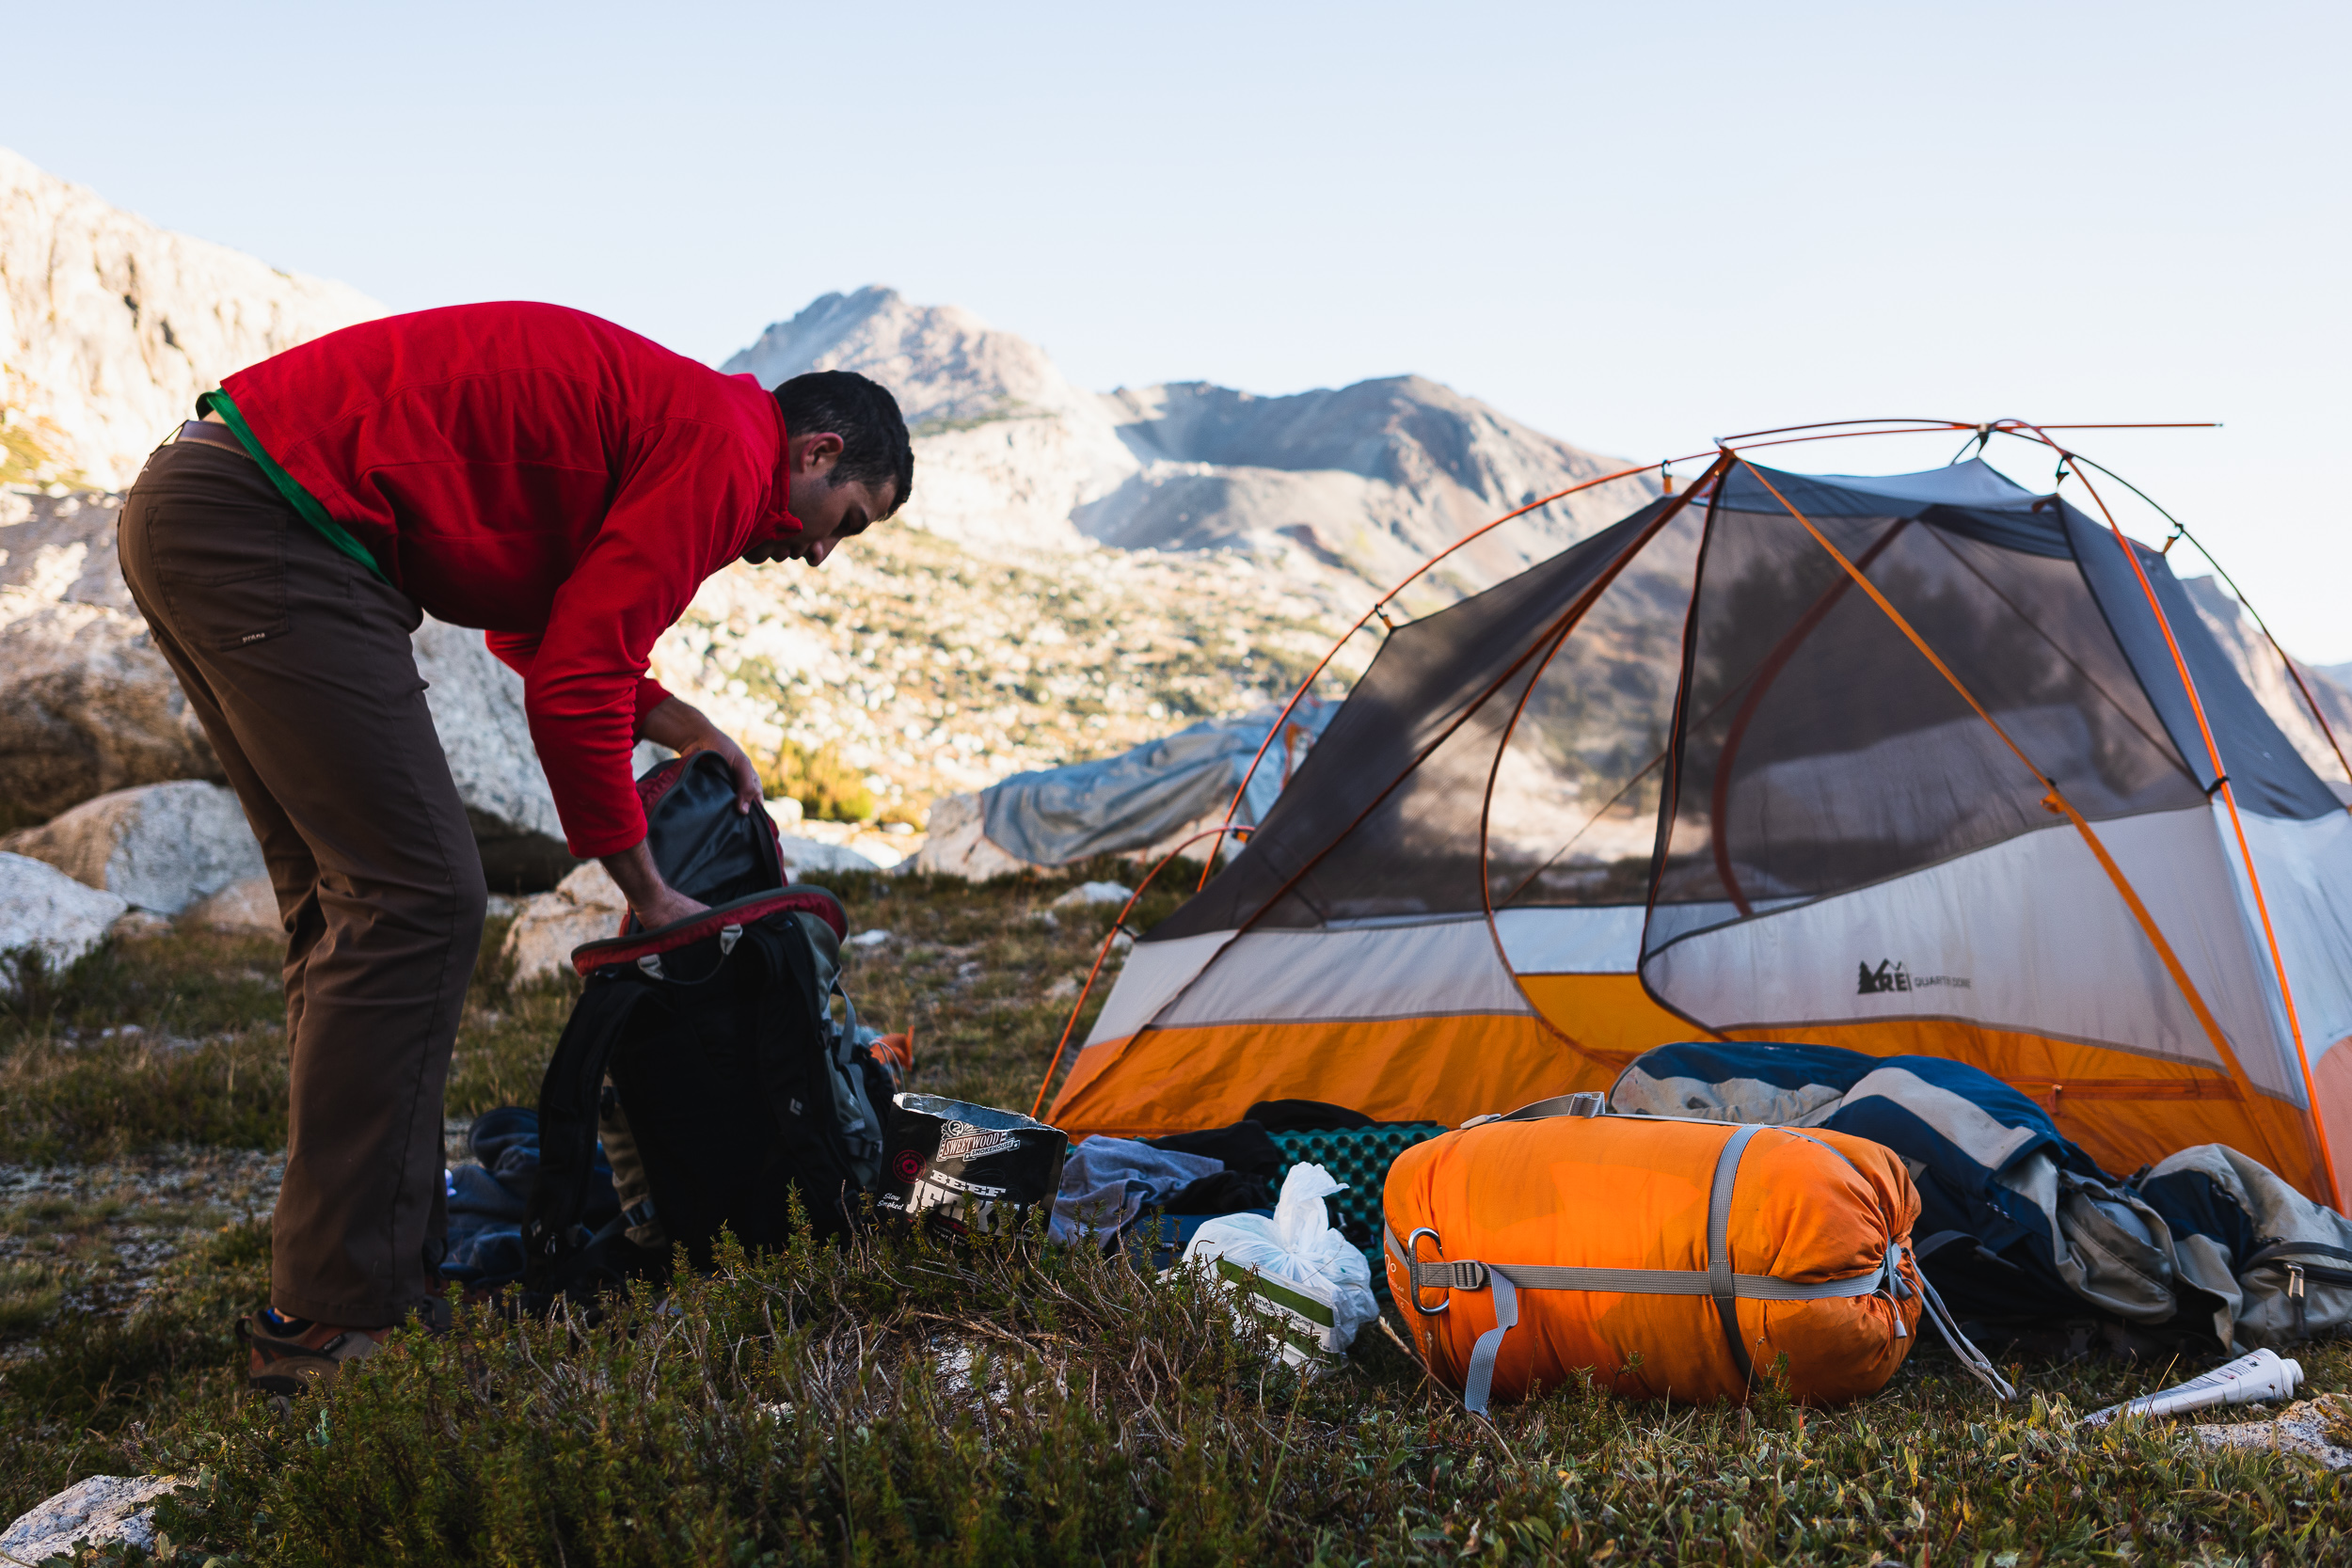 Ultra Heavyweight 101: - Step 1: Haul as much food, drink and excess comfort into the backcountry as you can.Step 2: Enjoy.